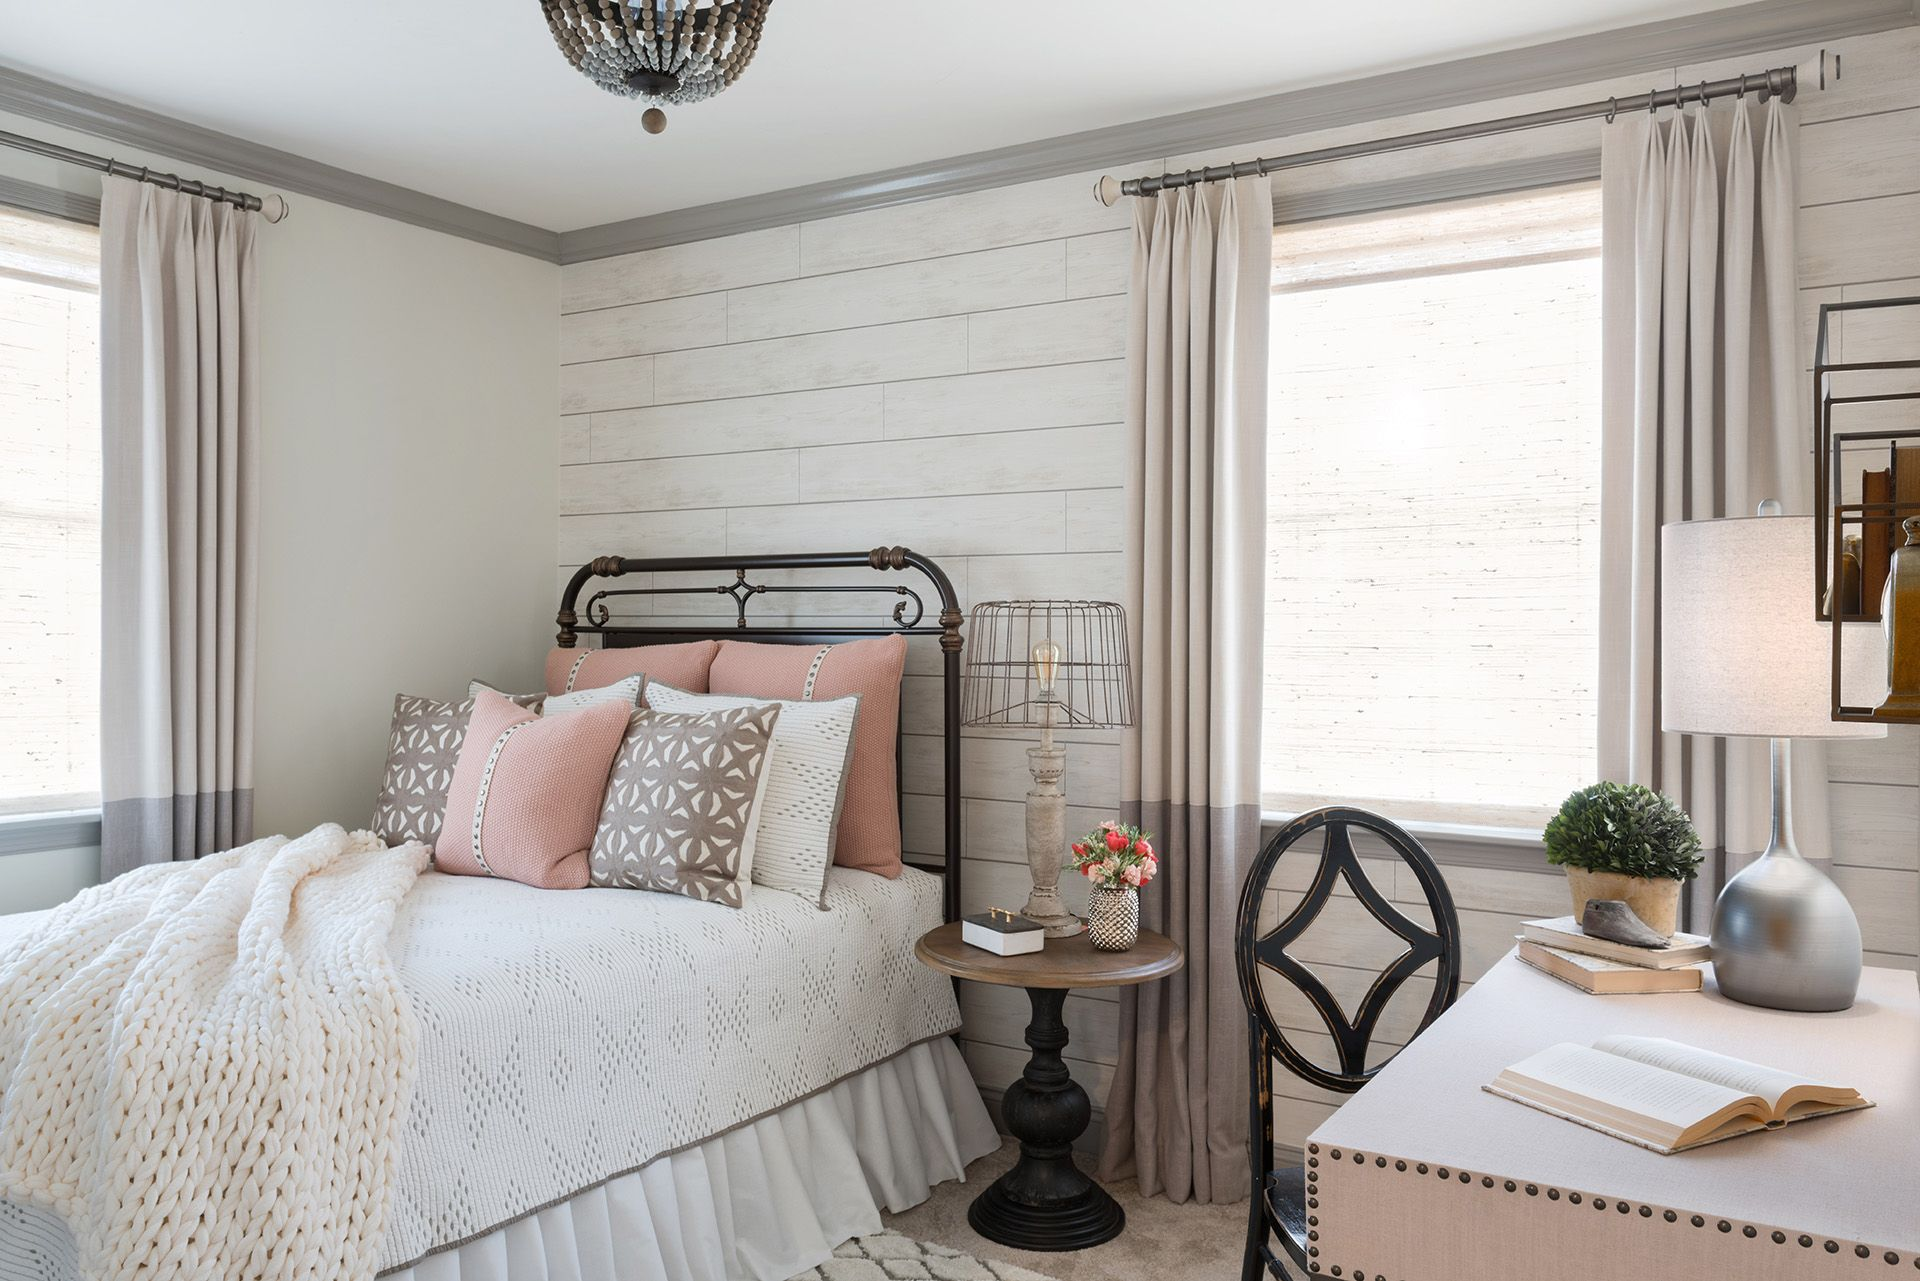 This Tiny Room Was Transformed Into A Cozy Guest Bedroom By Combining A Variety Of Beautiful Texture Farmhouse Dining Room Chic Bedroom Farmhouse Chic Bedroom Dining room into bedroom